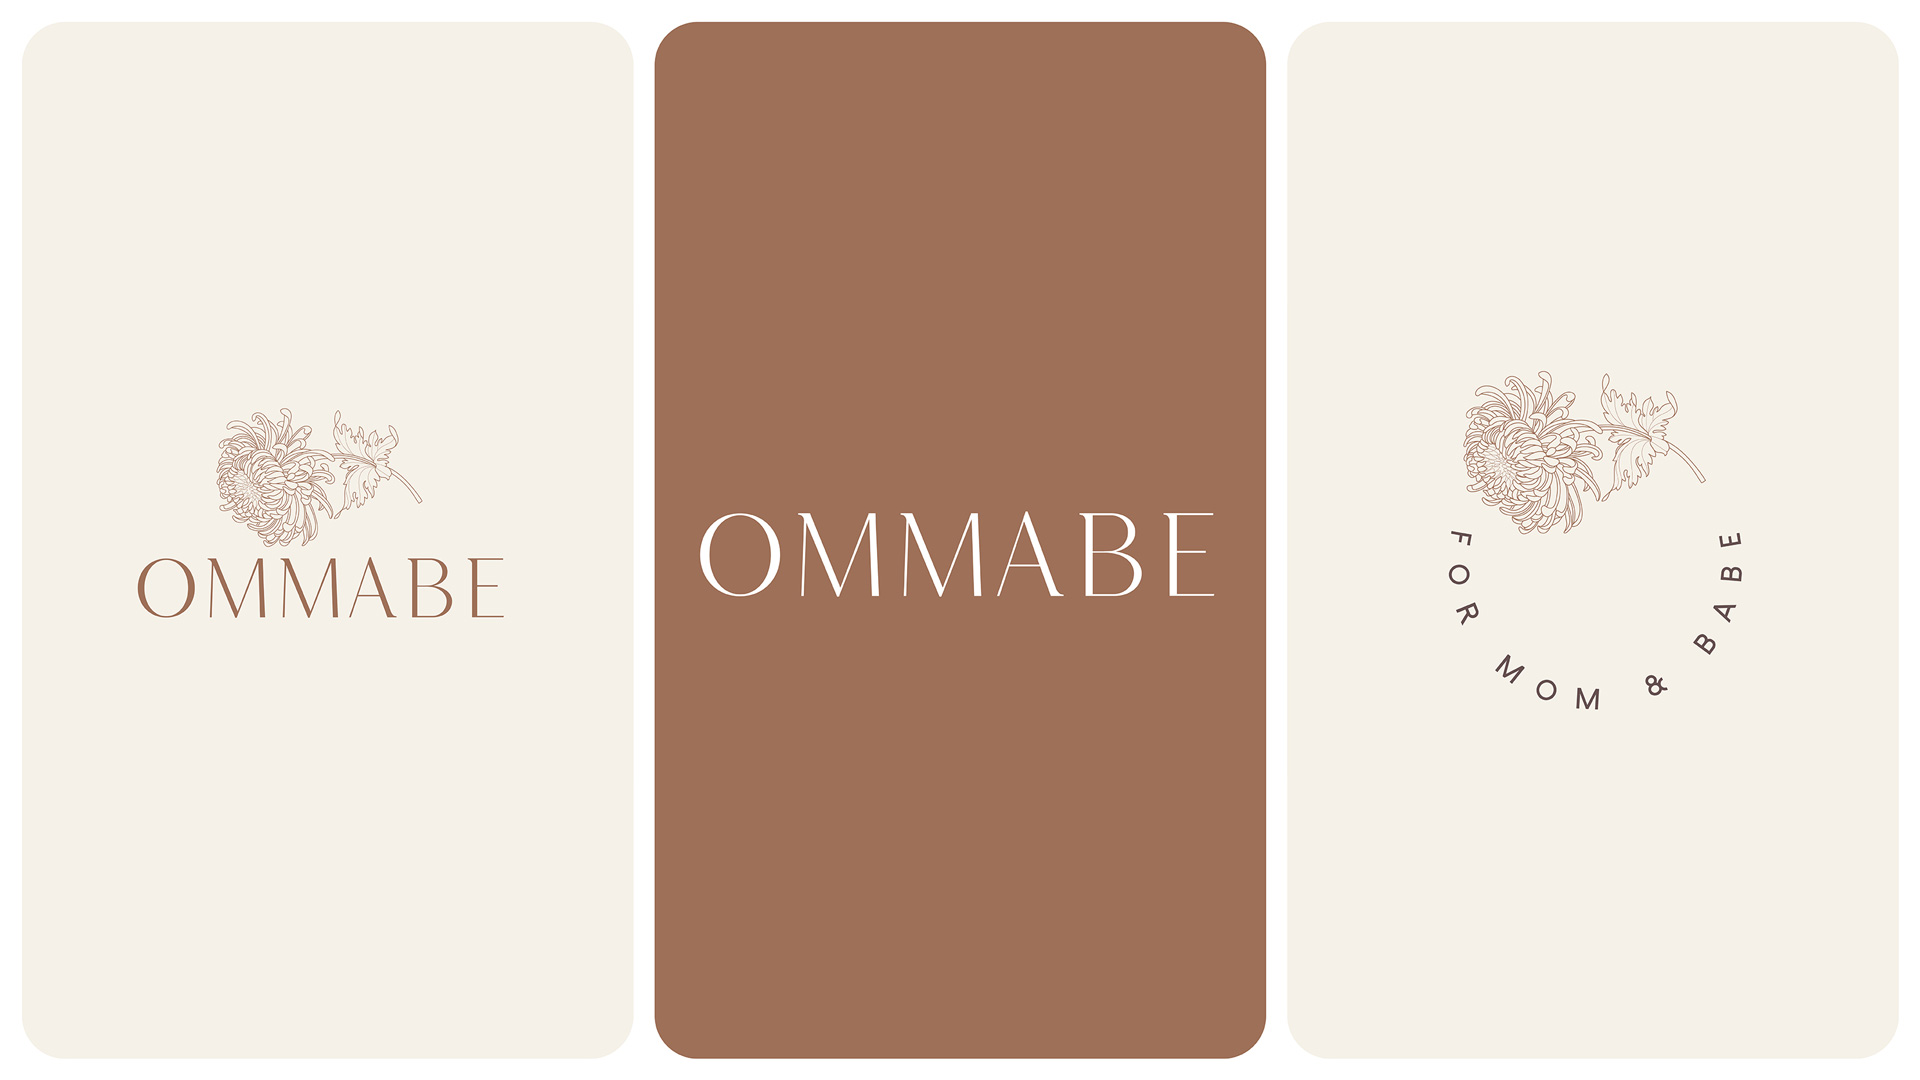 Identity and Logo for Ommabe